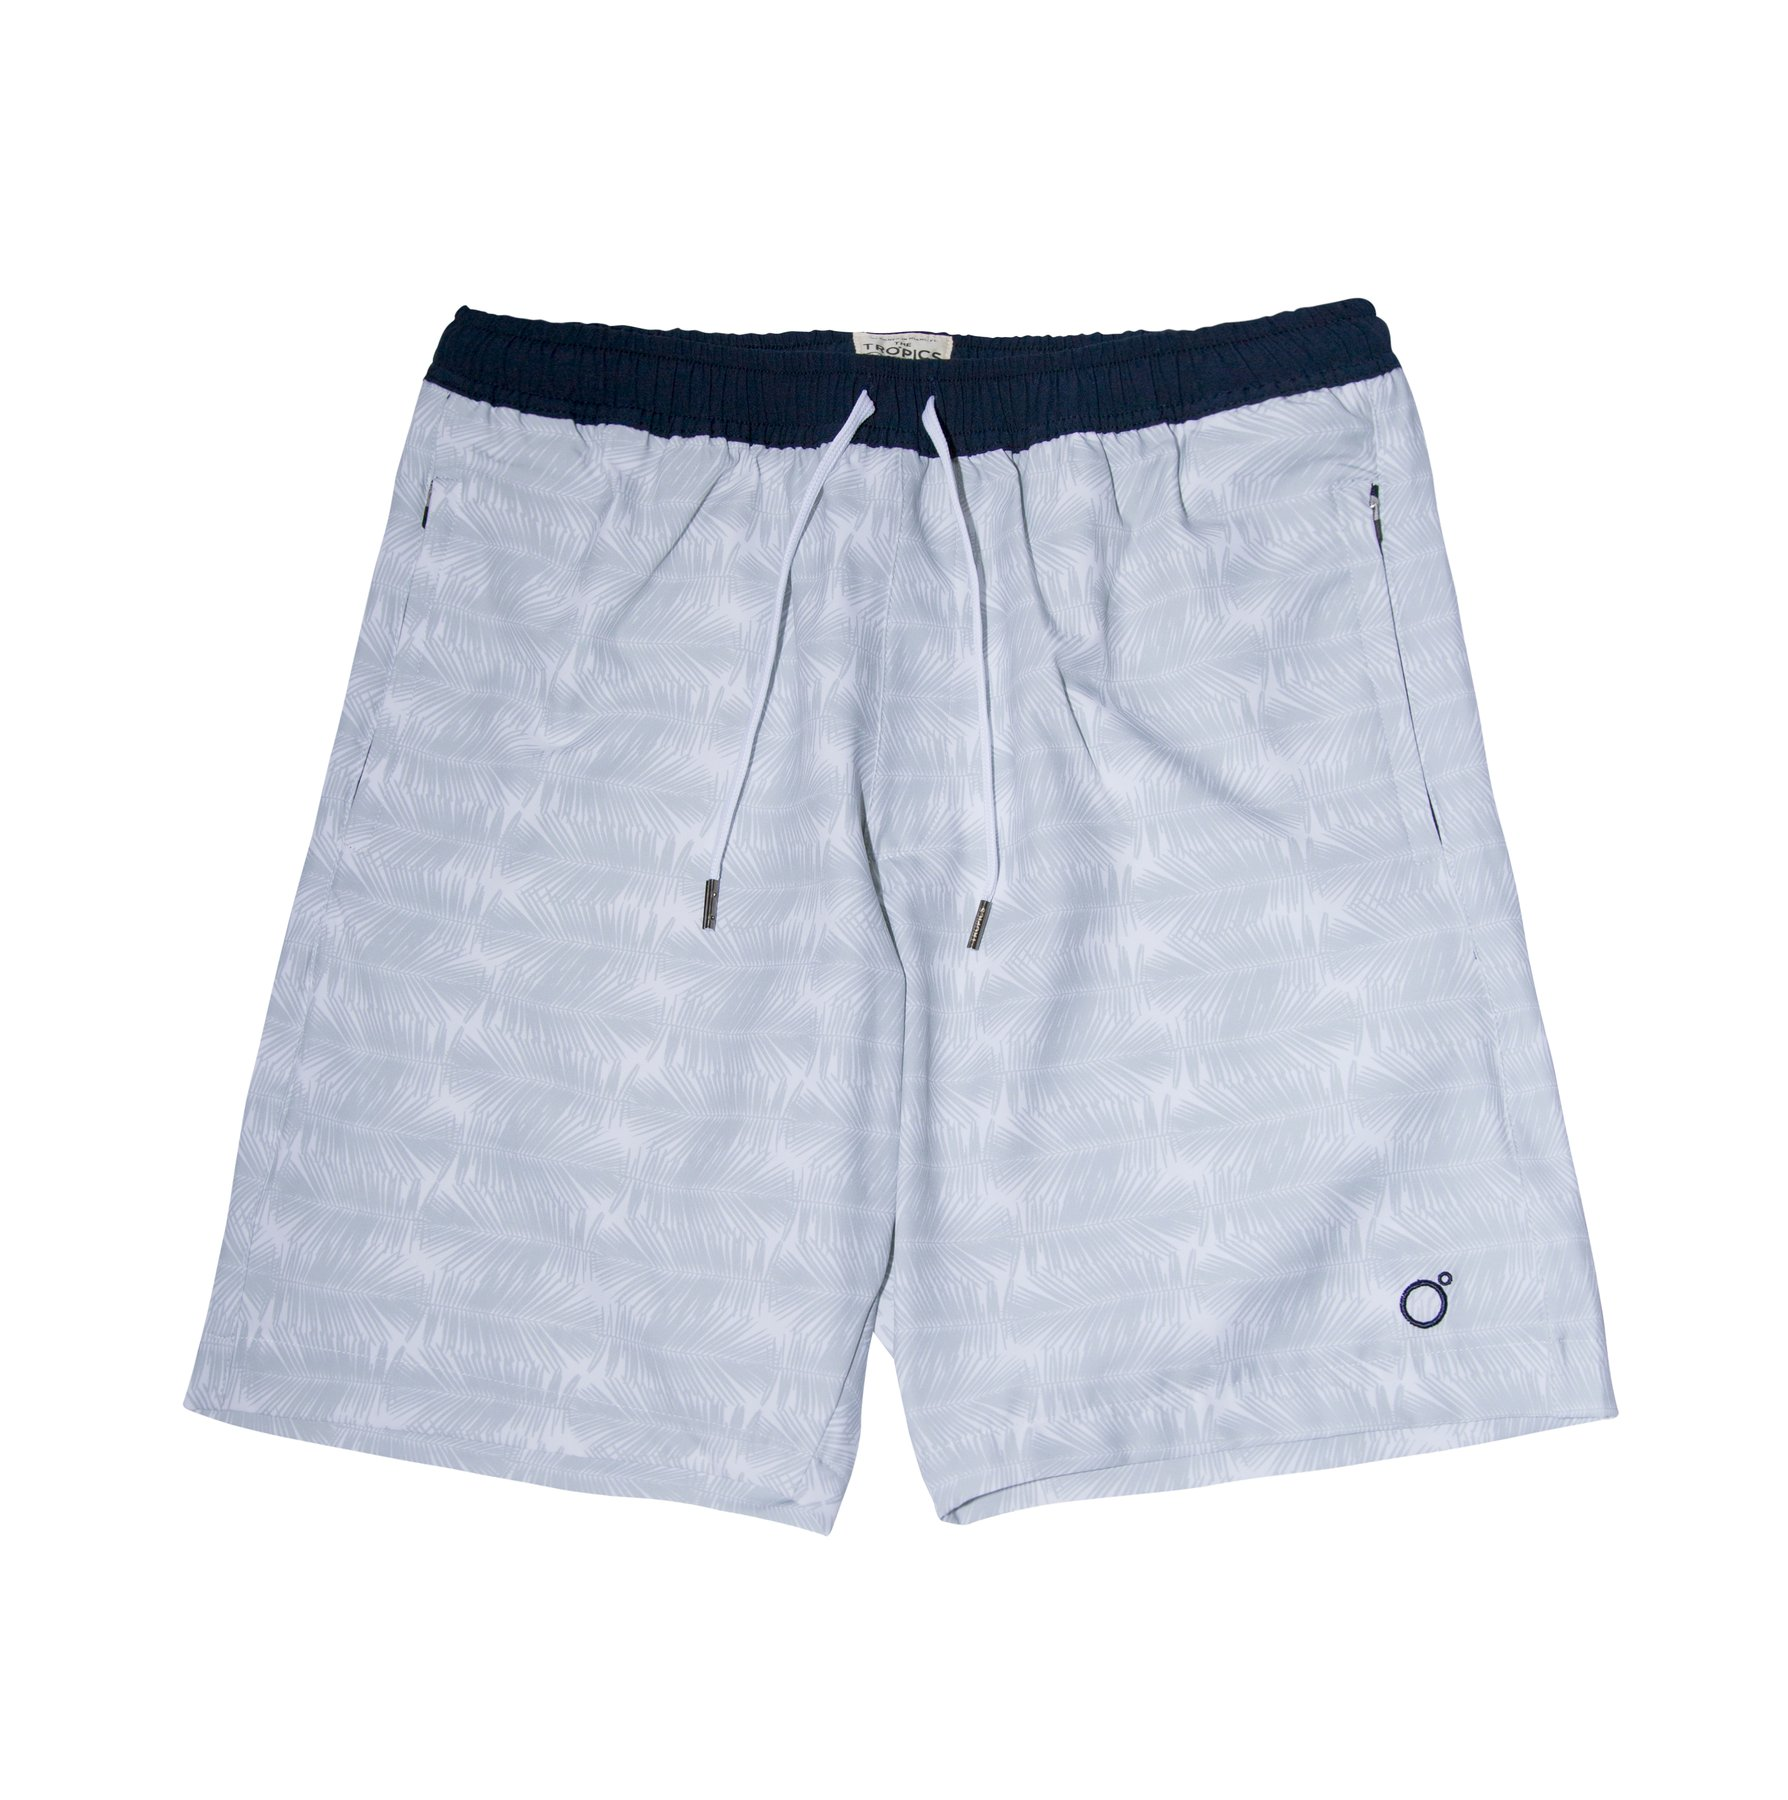 Isle Trunk - Cloud // $95